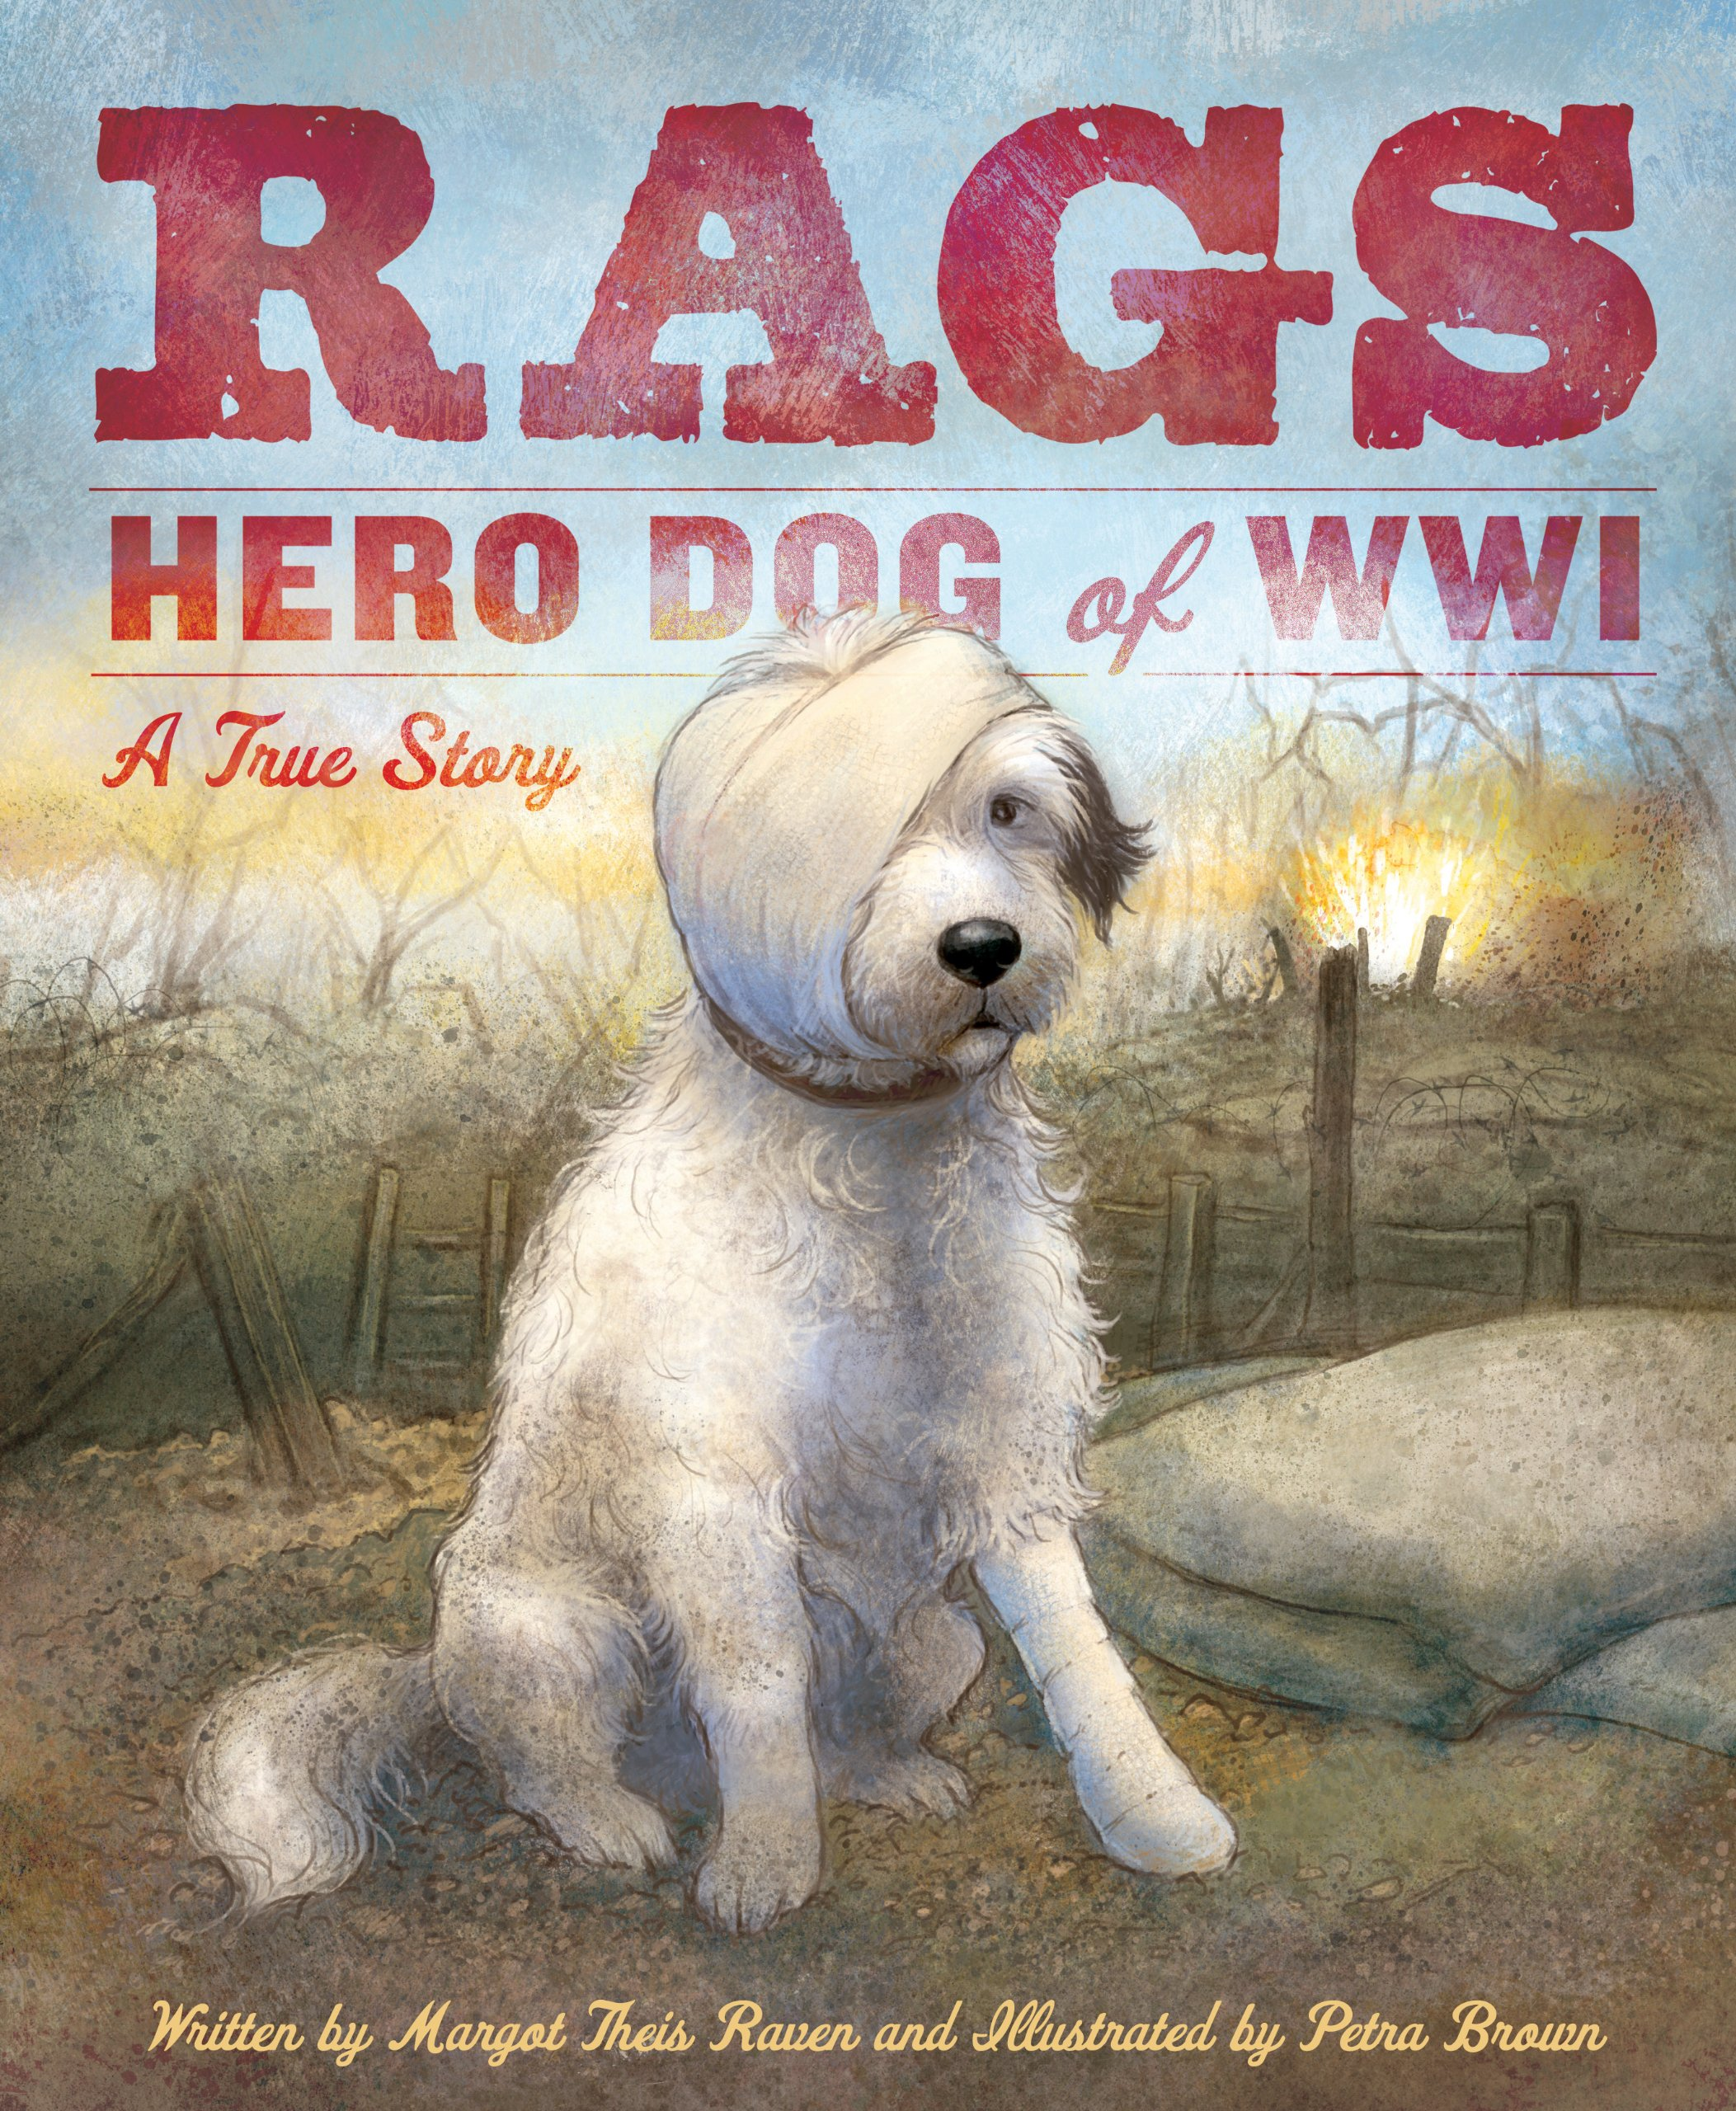 Narrative Essay Sample Papers Rags Hero Dog Of Wwi A True Story Margot Theis Raven Petra Brown   Amazoncom Books Thesis Examples For Argumentative Essays also Is Psychology A Science Essay Rags Hero Dog Of Wwi A True Story Margot Theis Raven Petra Brown  How To Write An Essay For High School